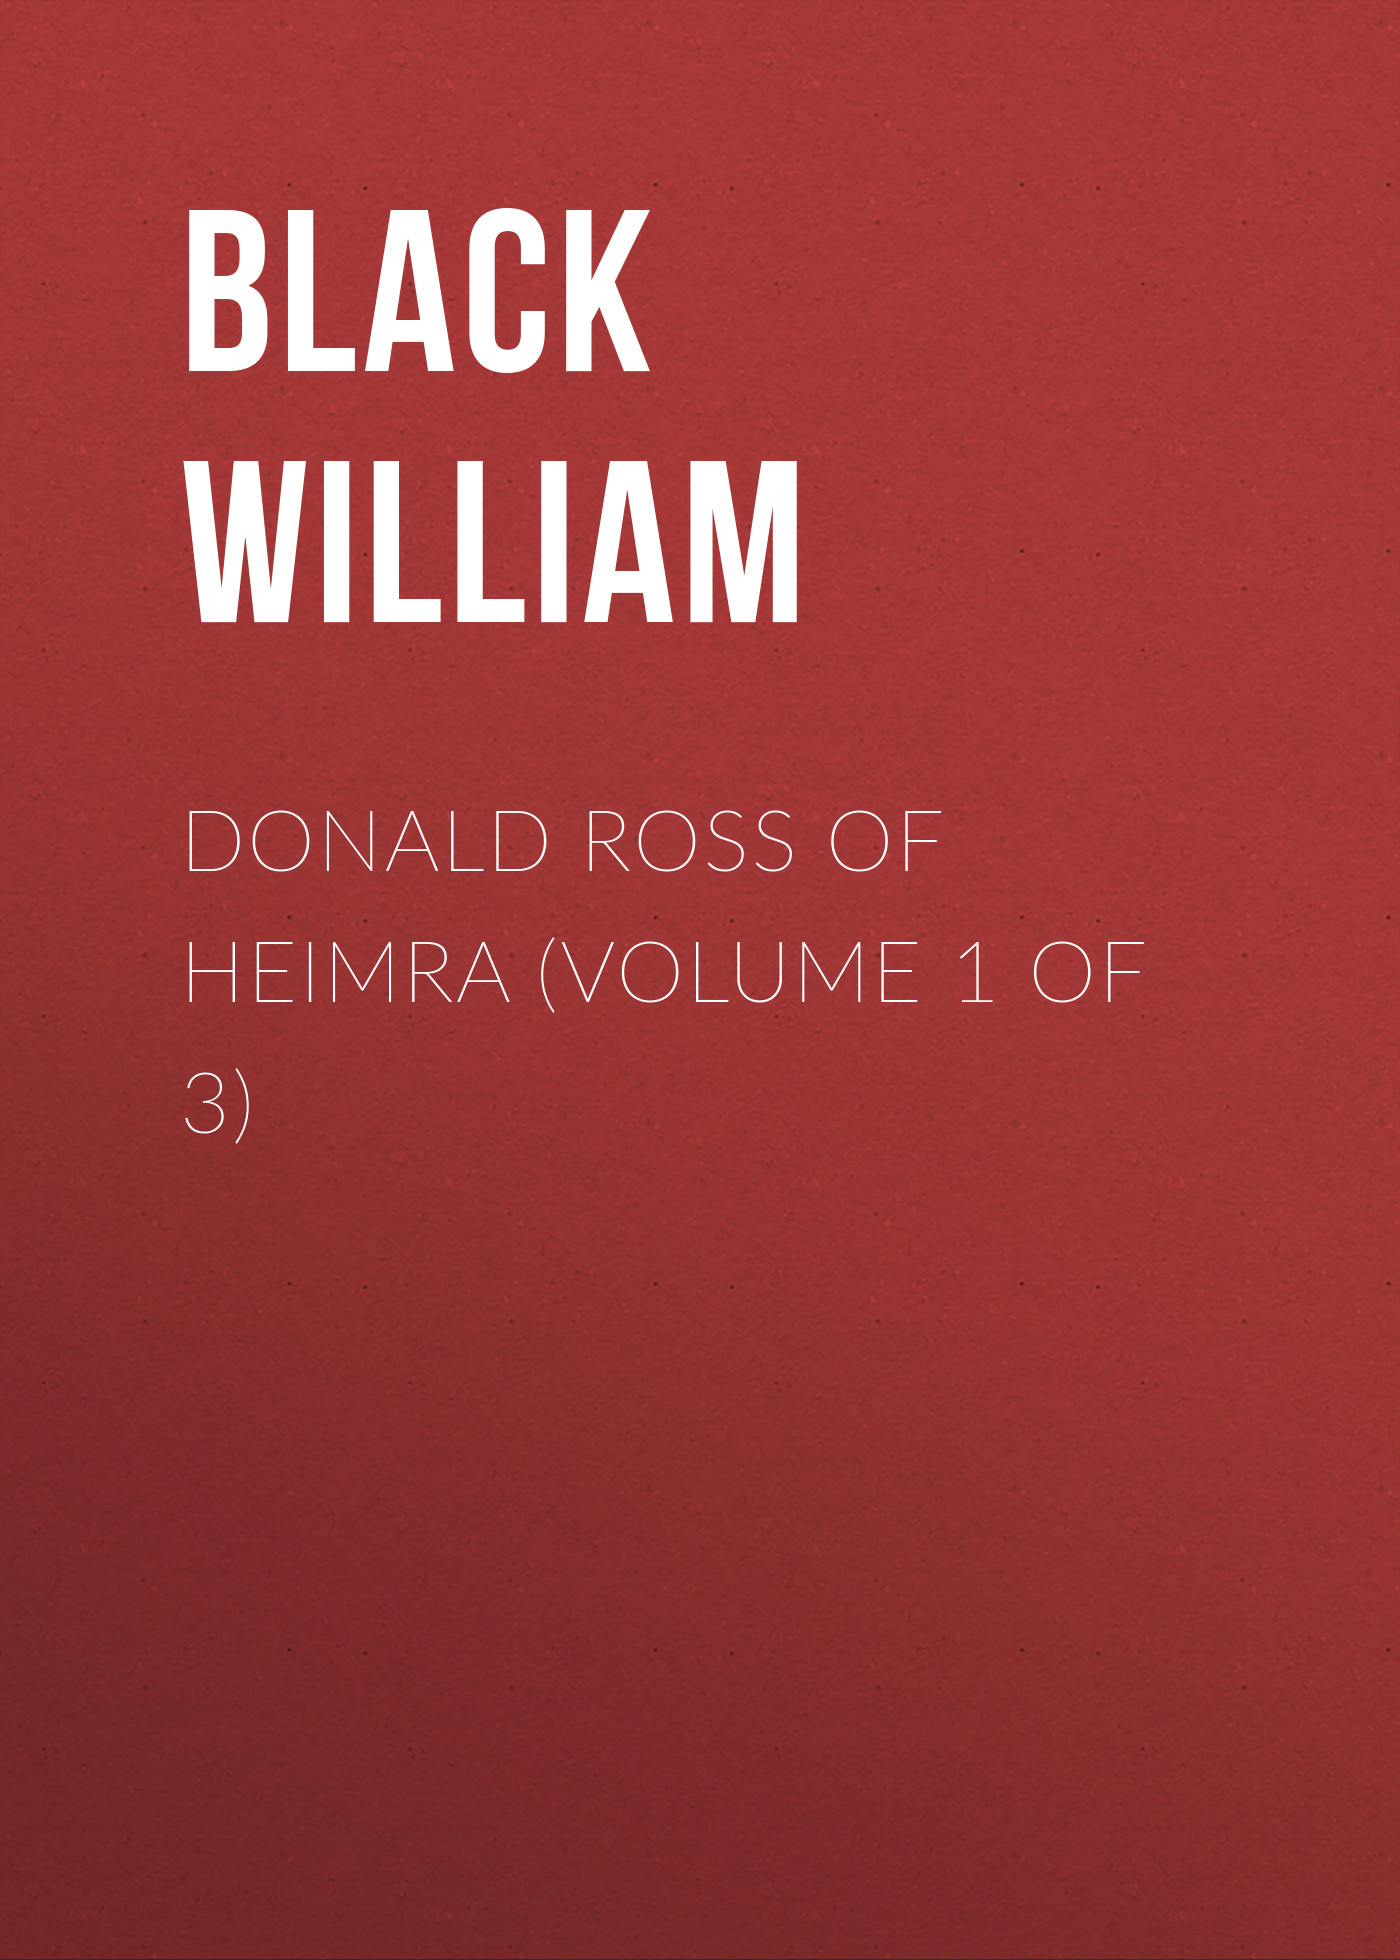 Black William Donald Ross of Heimra (Volume 1 of 3) mitchell donald grant english lands letters and kings volume 1